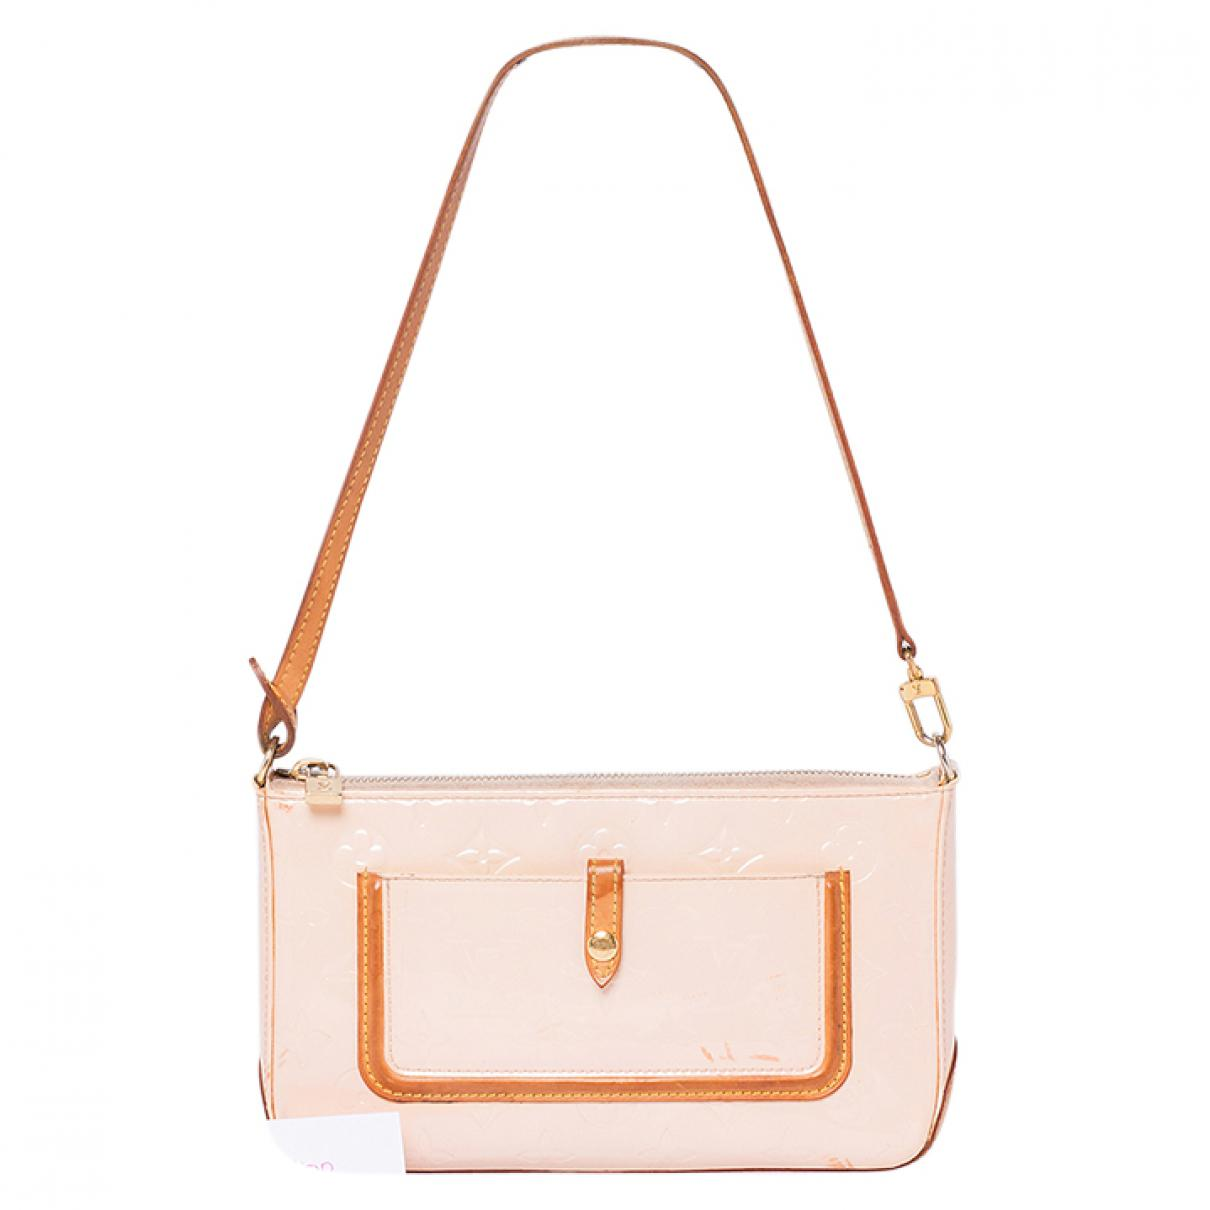 0bb9dd658f64 Lyst - Louis Vuitton Patent Leather Mini Bag in Pink